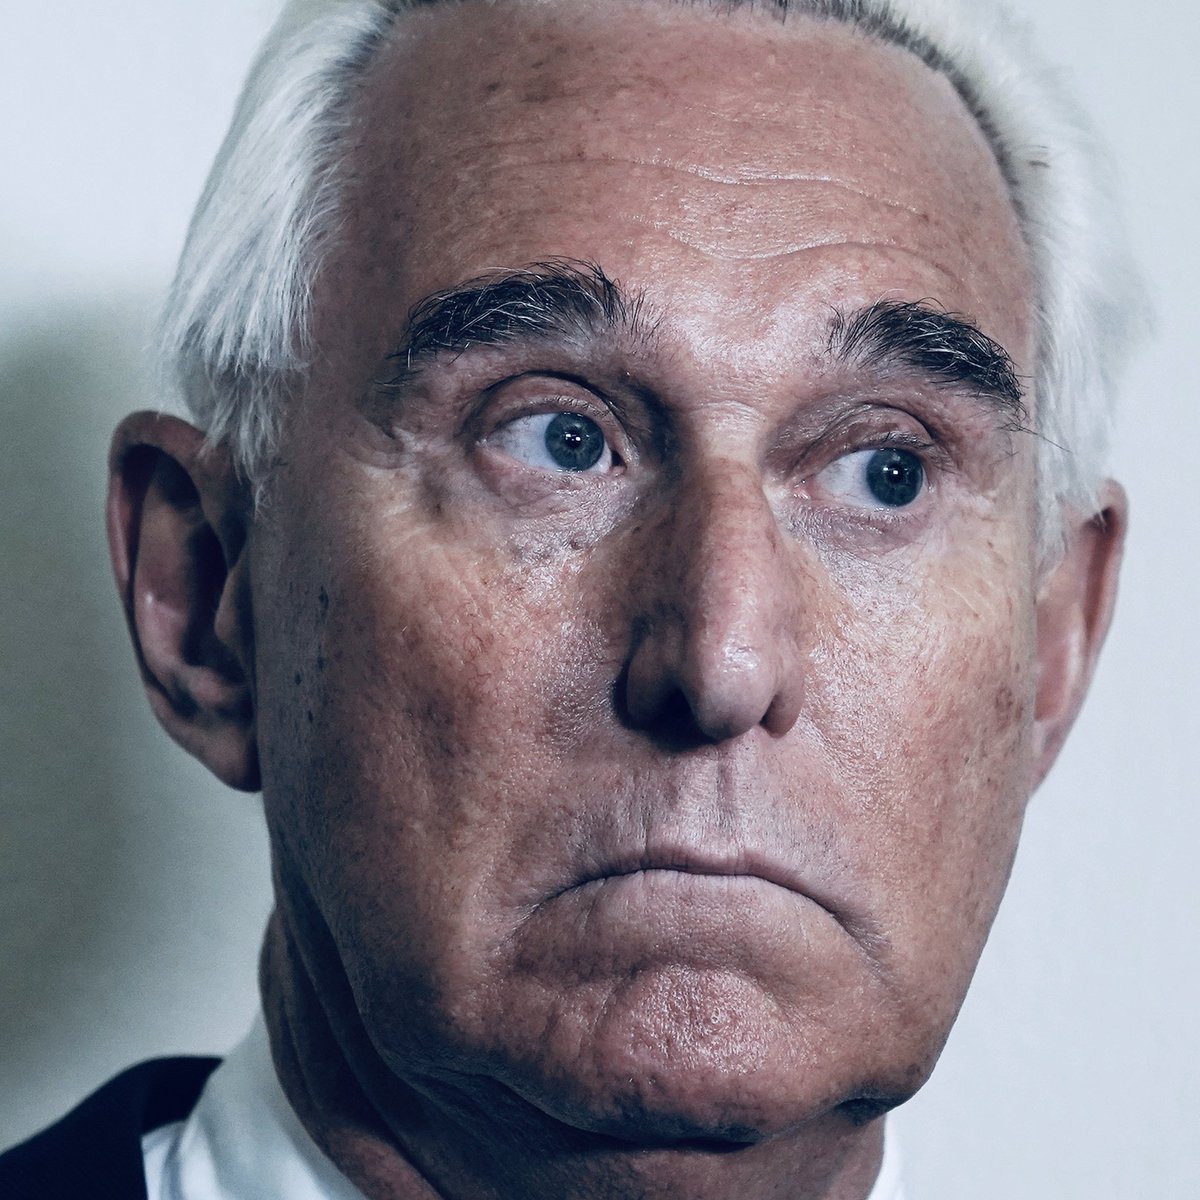 Roger Stone is a rich white man convicted of OBSTRUCTION of justice & PERJURY. His sentence is being reduced.  Willie Simmons is a black man from Alabama currently serving a LIFE SENTENCE for stealing $9.  Never let anyone tell you justice is blind in America. It only sees color.